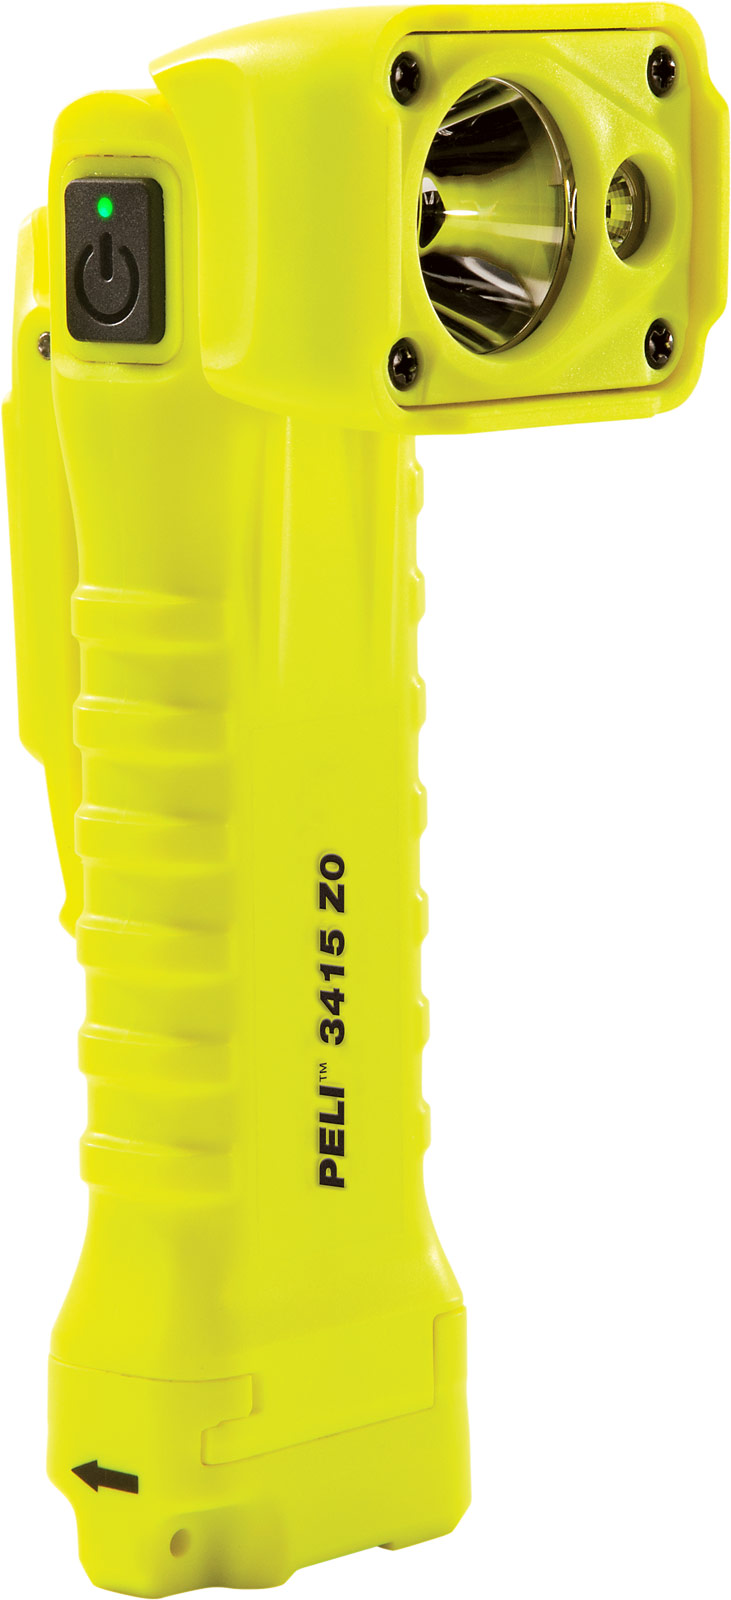 peli led torch safety zone 0 torches